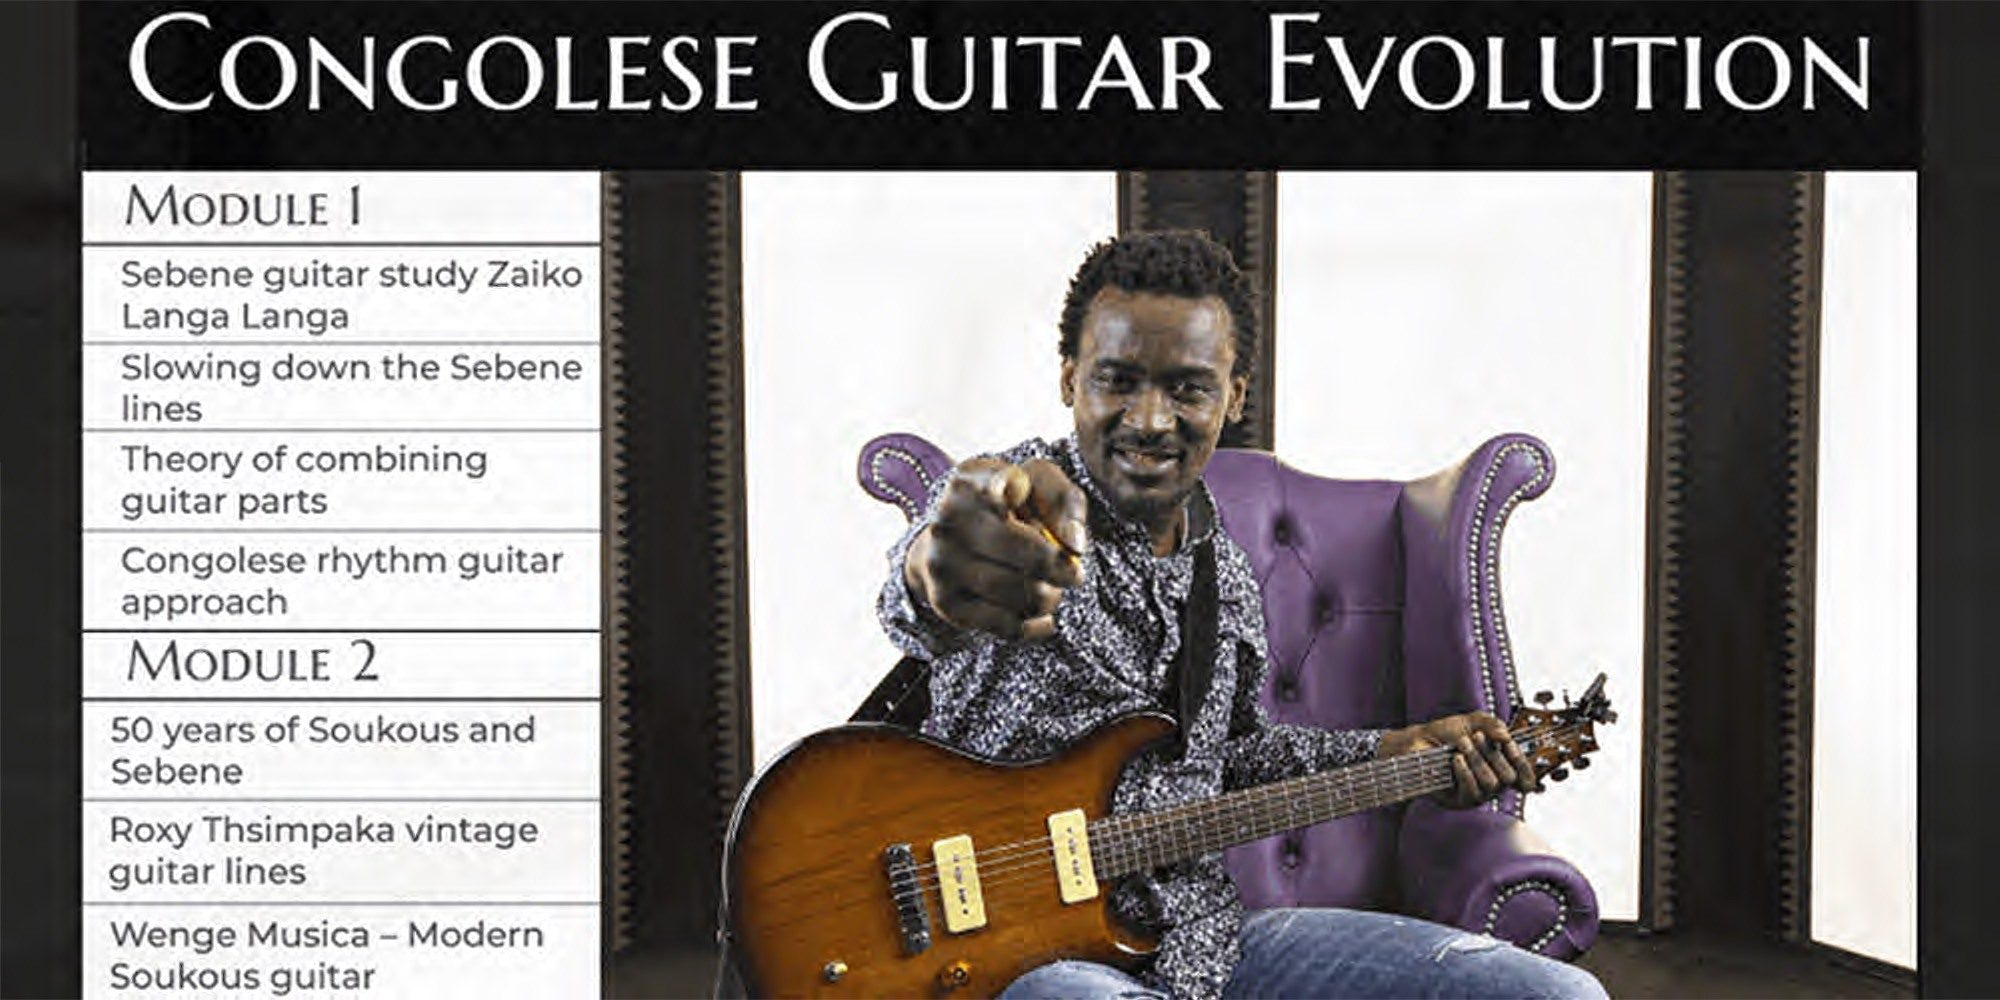 Learning Congolese Guitar